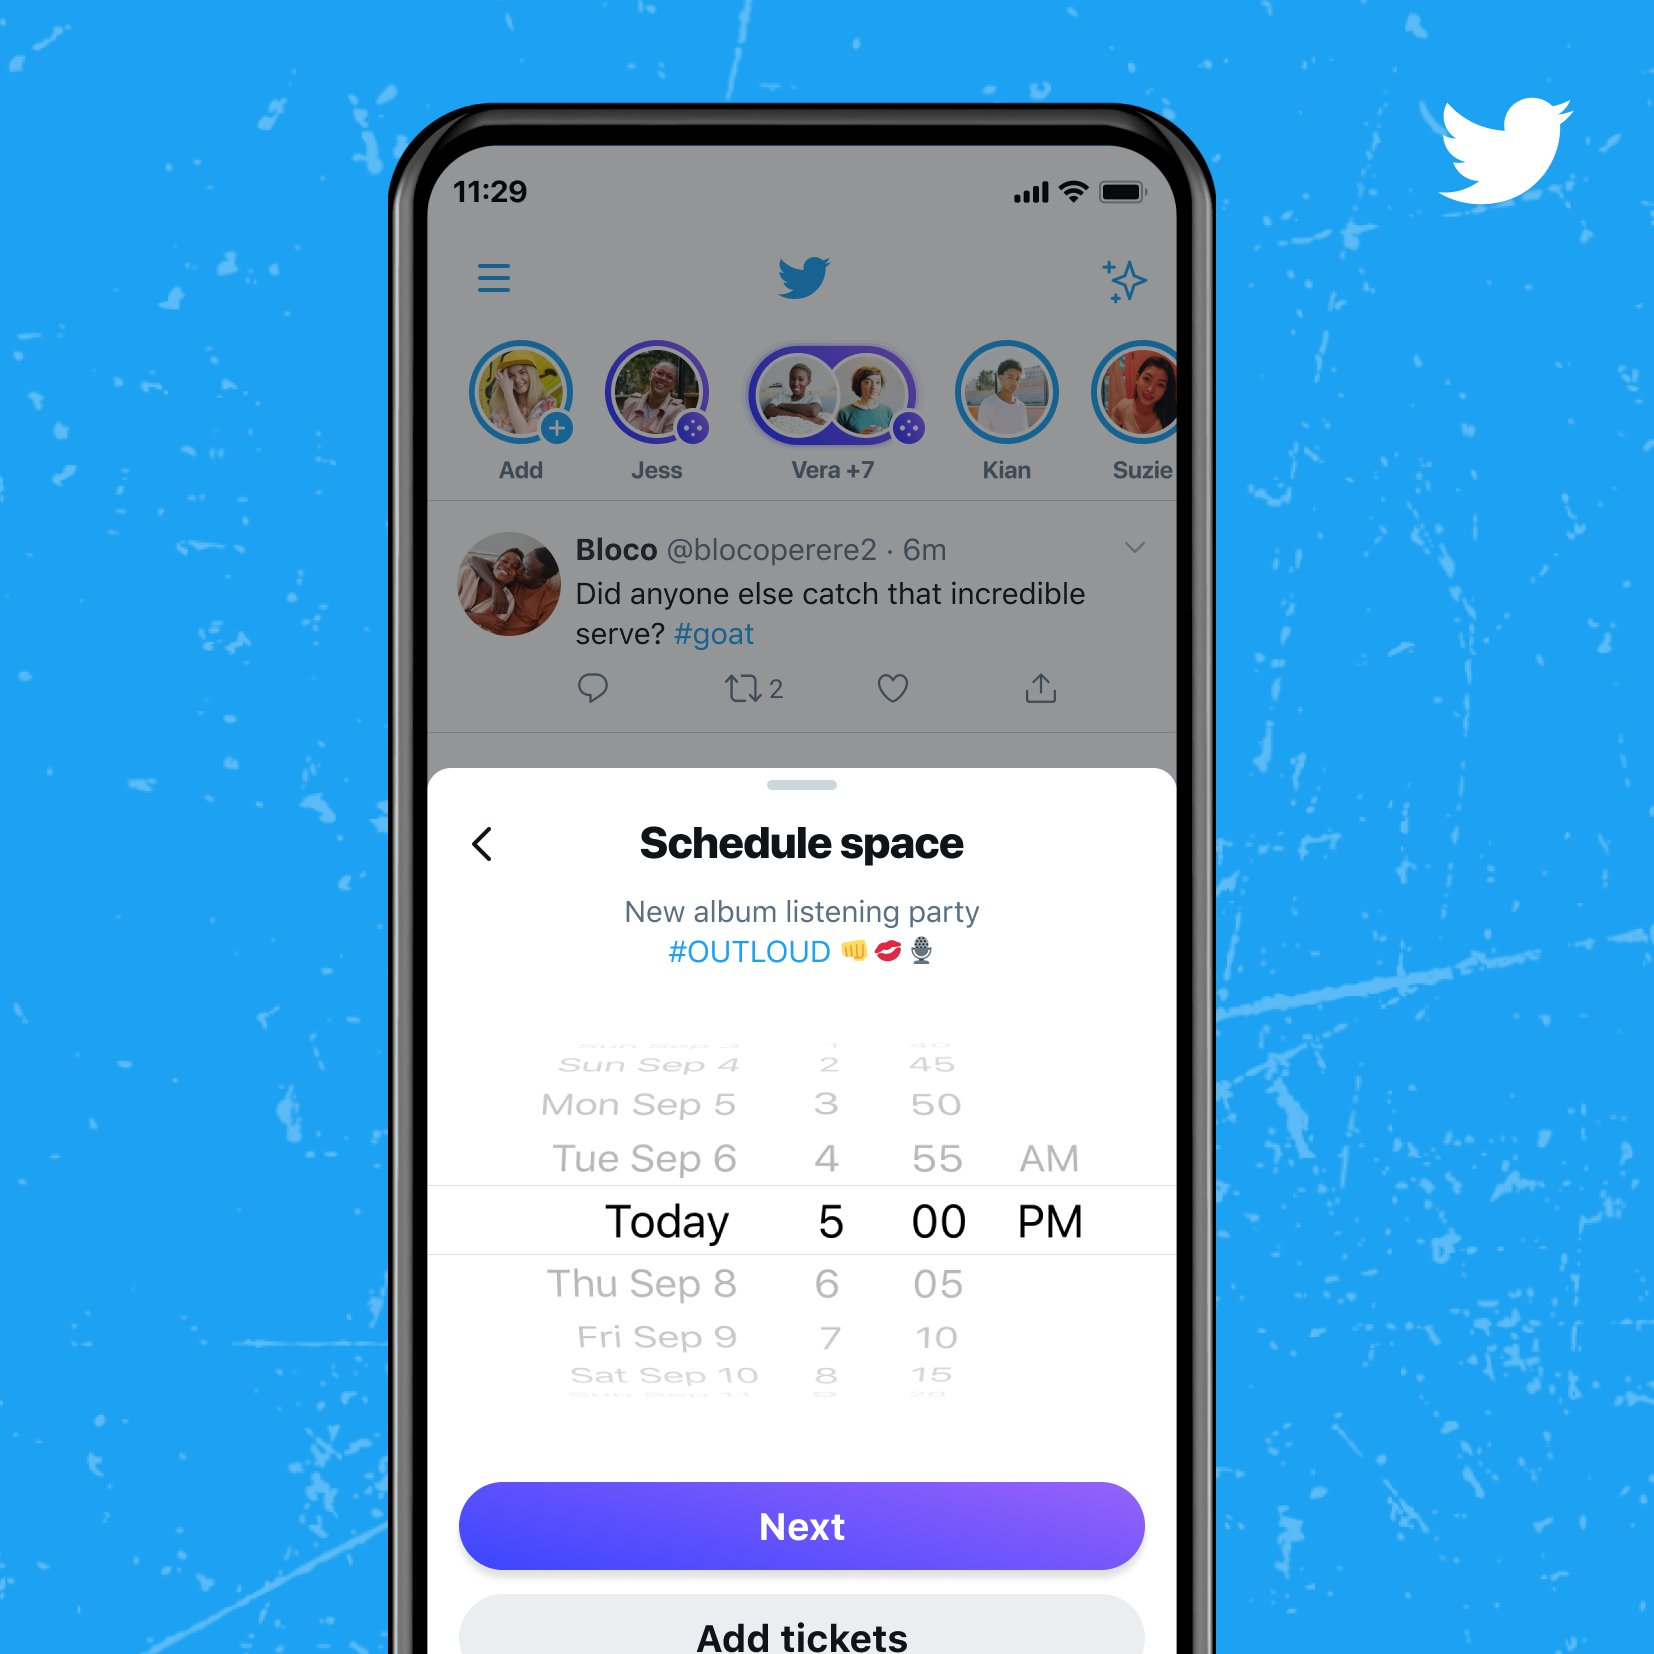 Twitter Spaces is open for all with 600 or more followers, competing with invite/iOS-only Clubhouse